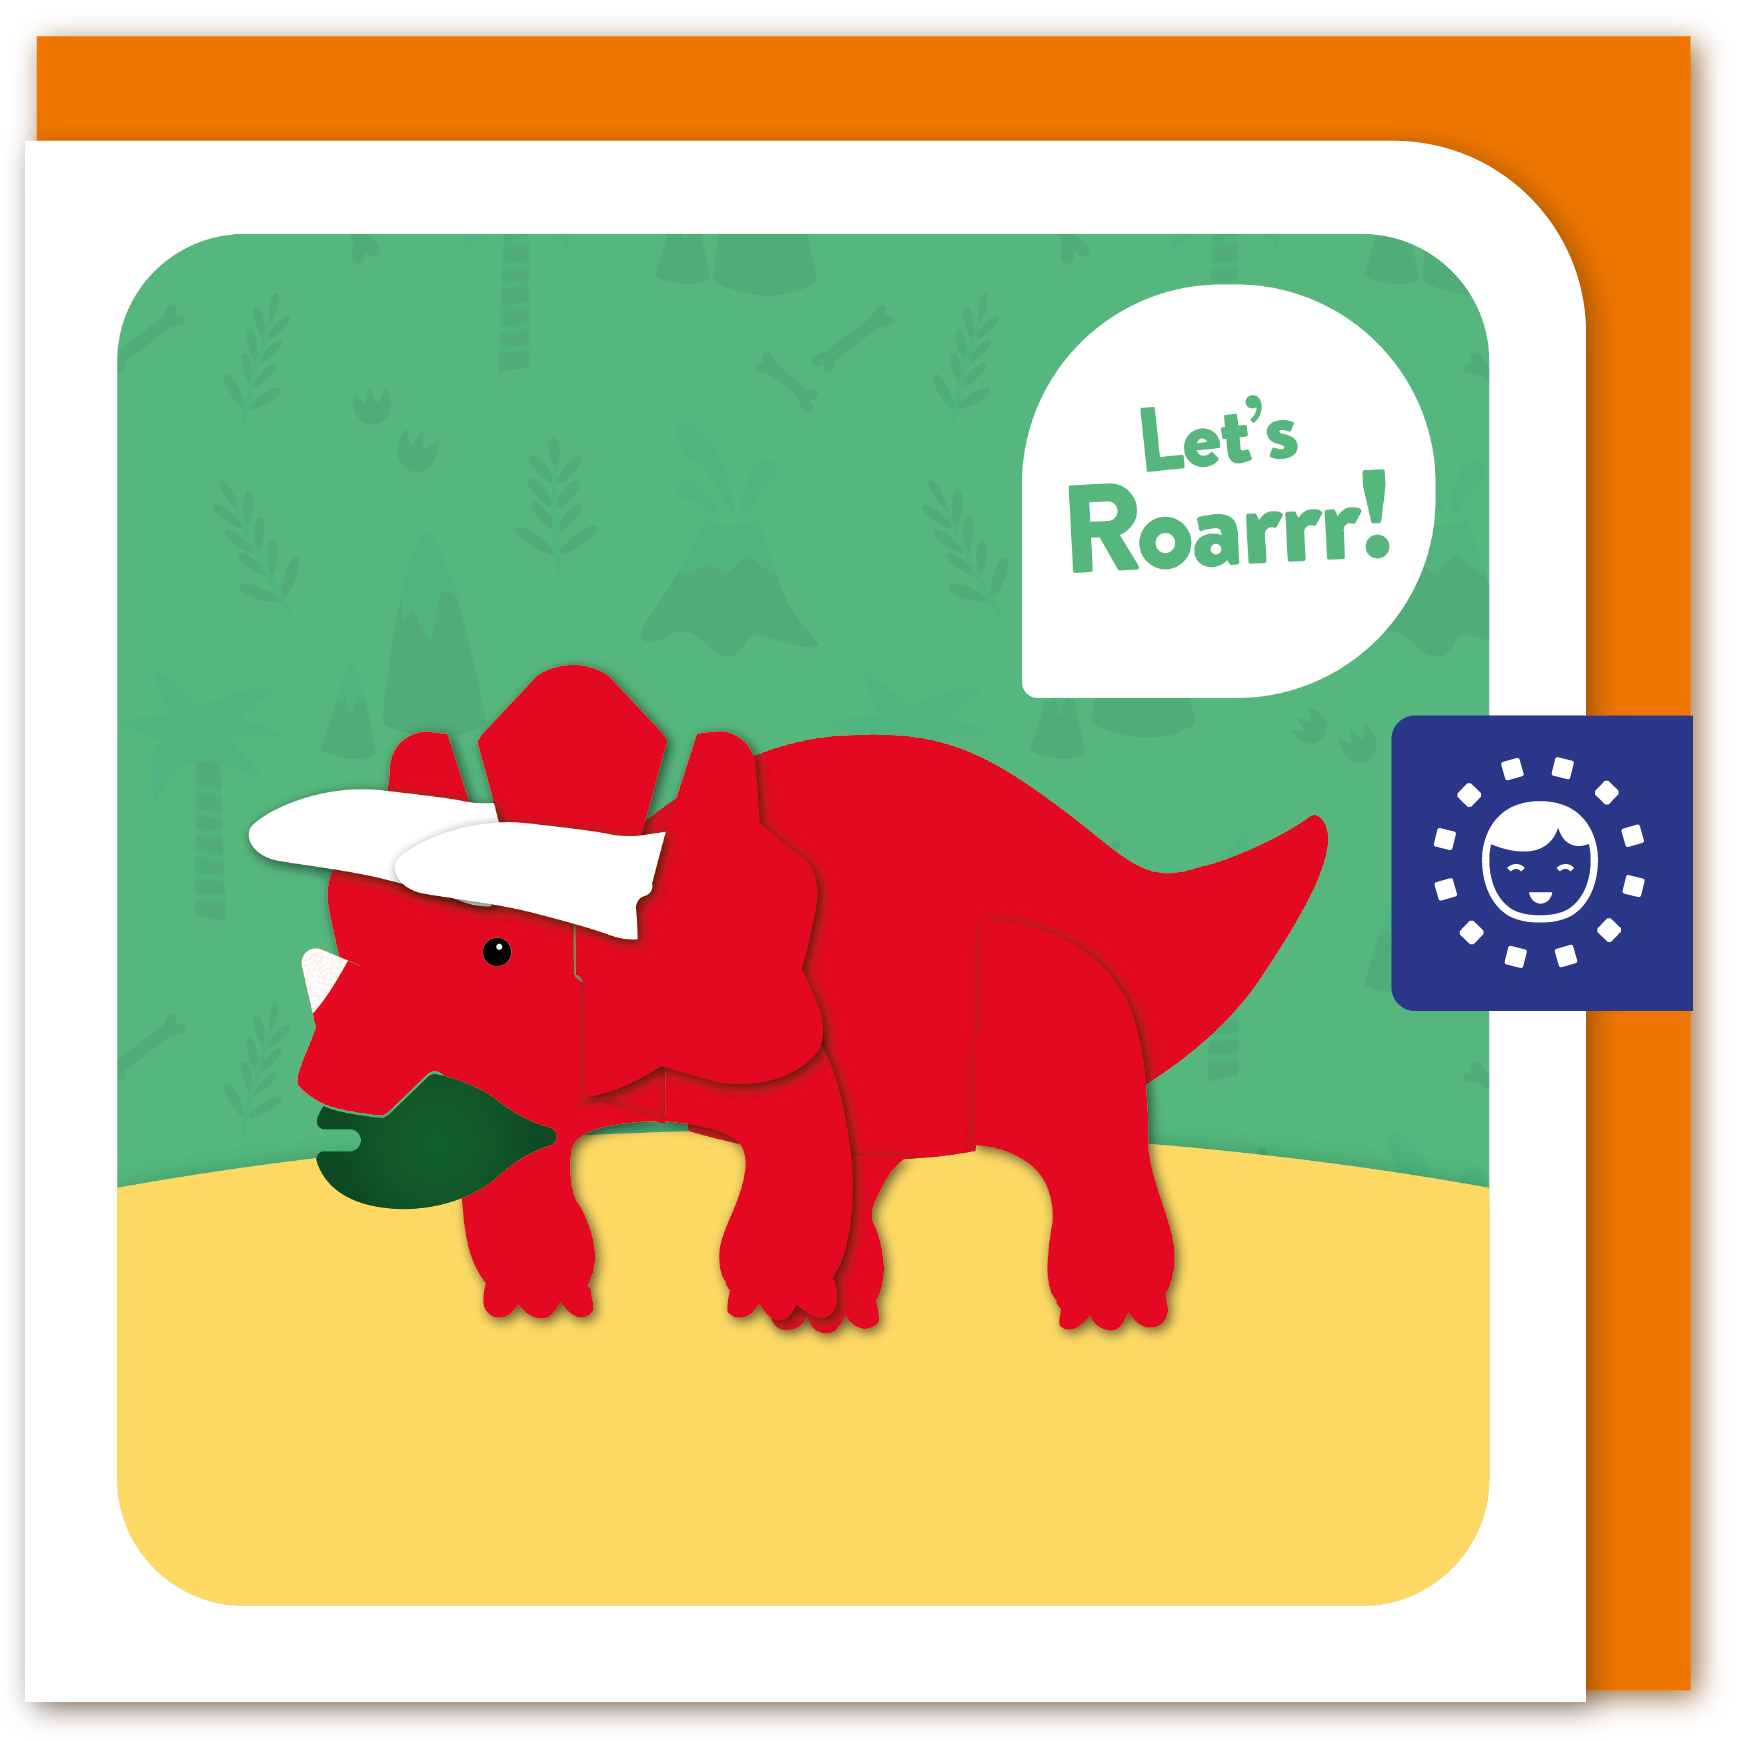 cards__dino2.png